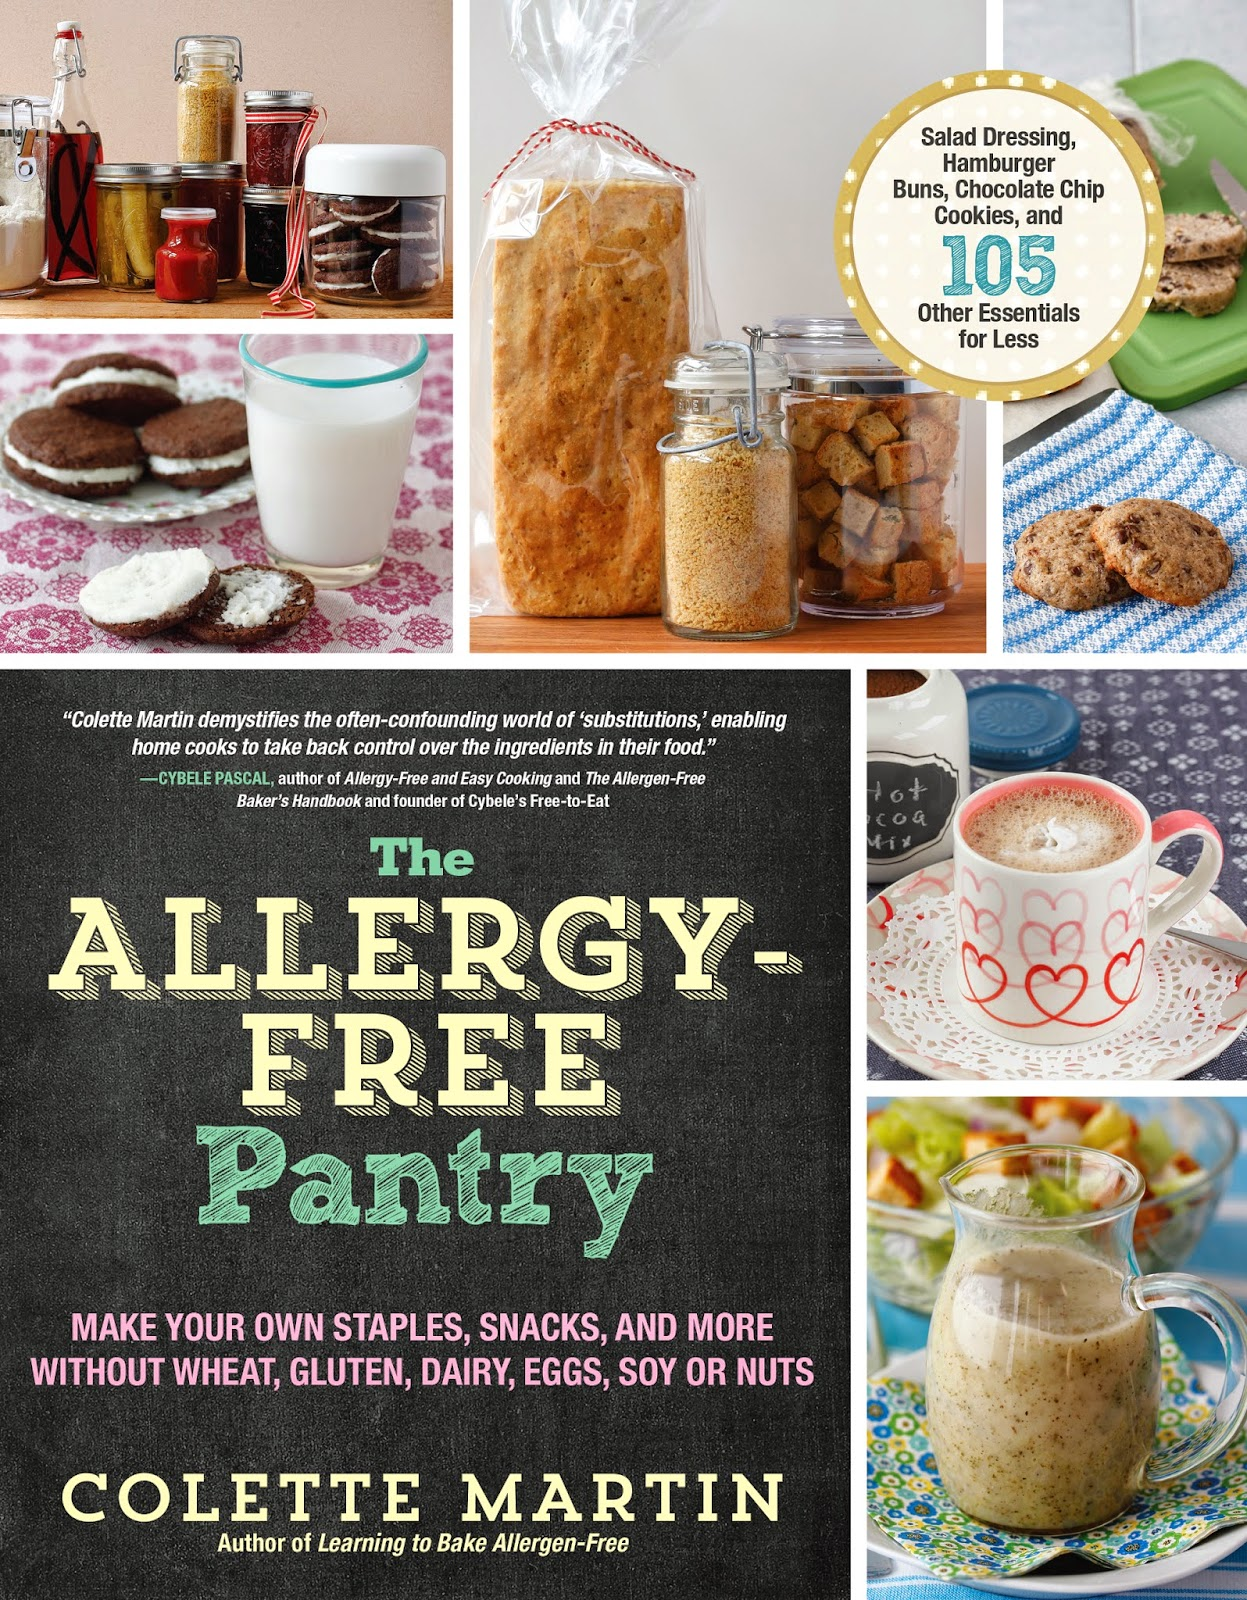 Learning to eat allergy free 2014 the allergy free pantry goes beyond baking including recipes for everything you need to stock your pantry to replace the processed foods you used to buy at forumfinder Images